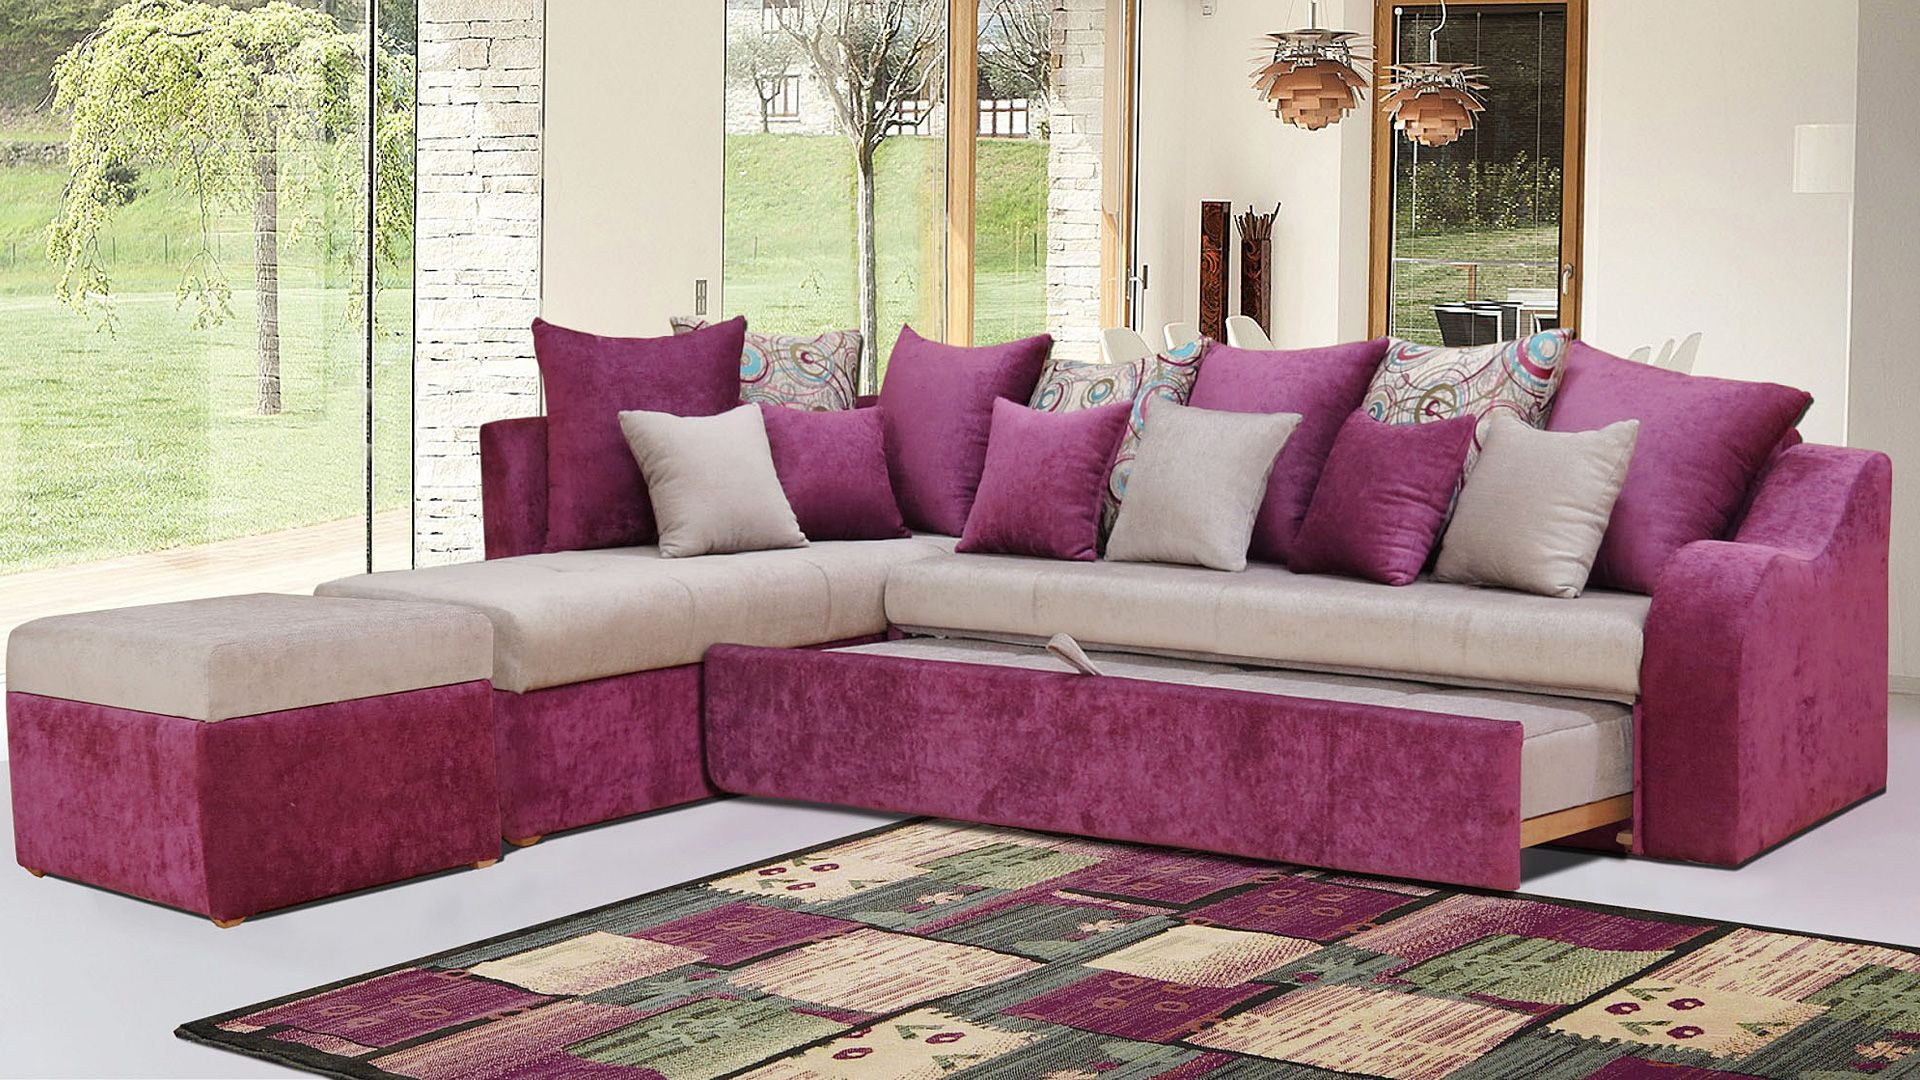 Alex ركنات مودرن تركى ركنه سرير Sectional Couch Room Home Decor